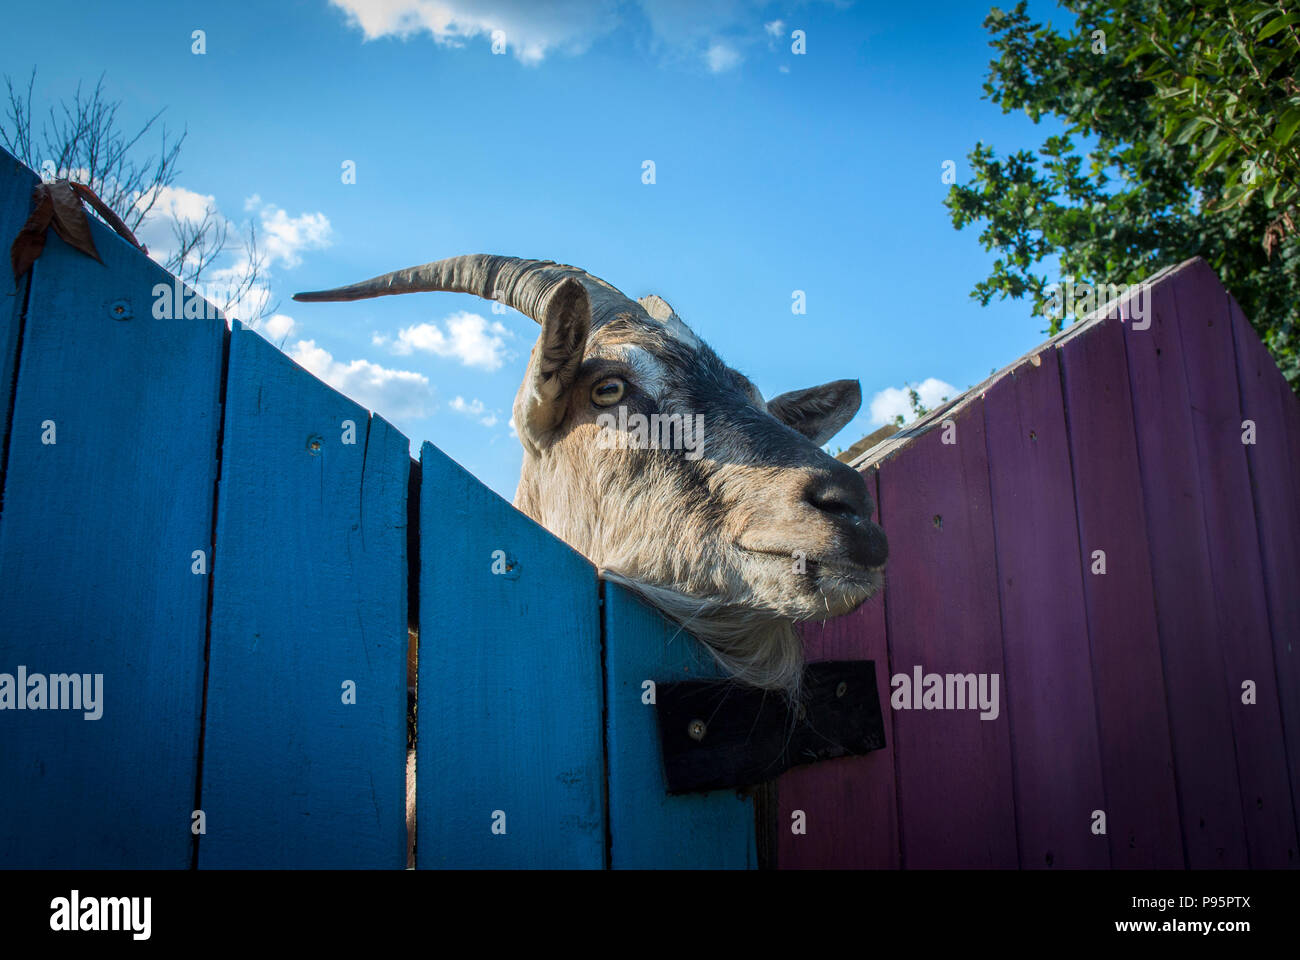 A goat takes a look around over the fence to its enclosure. Stock Photo